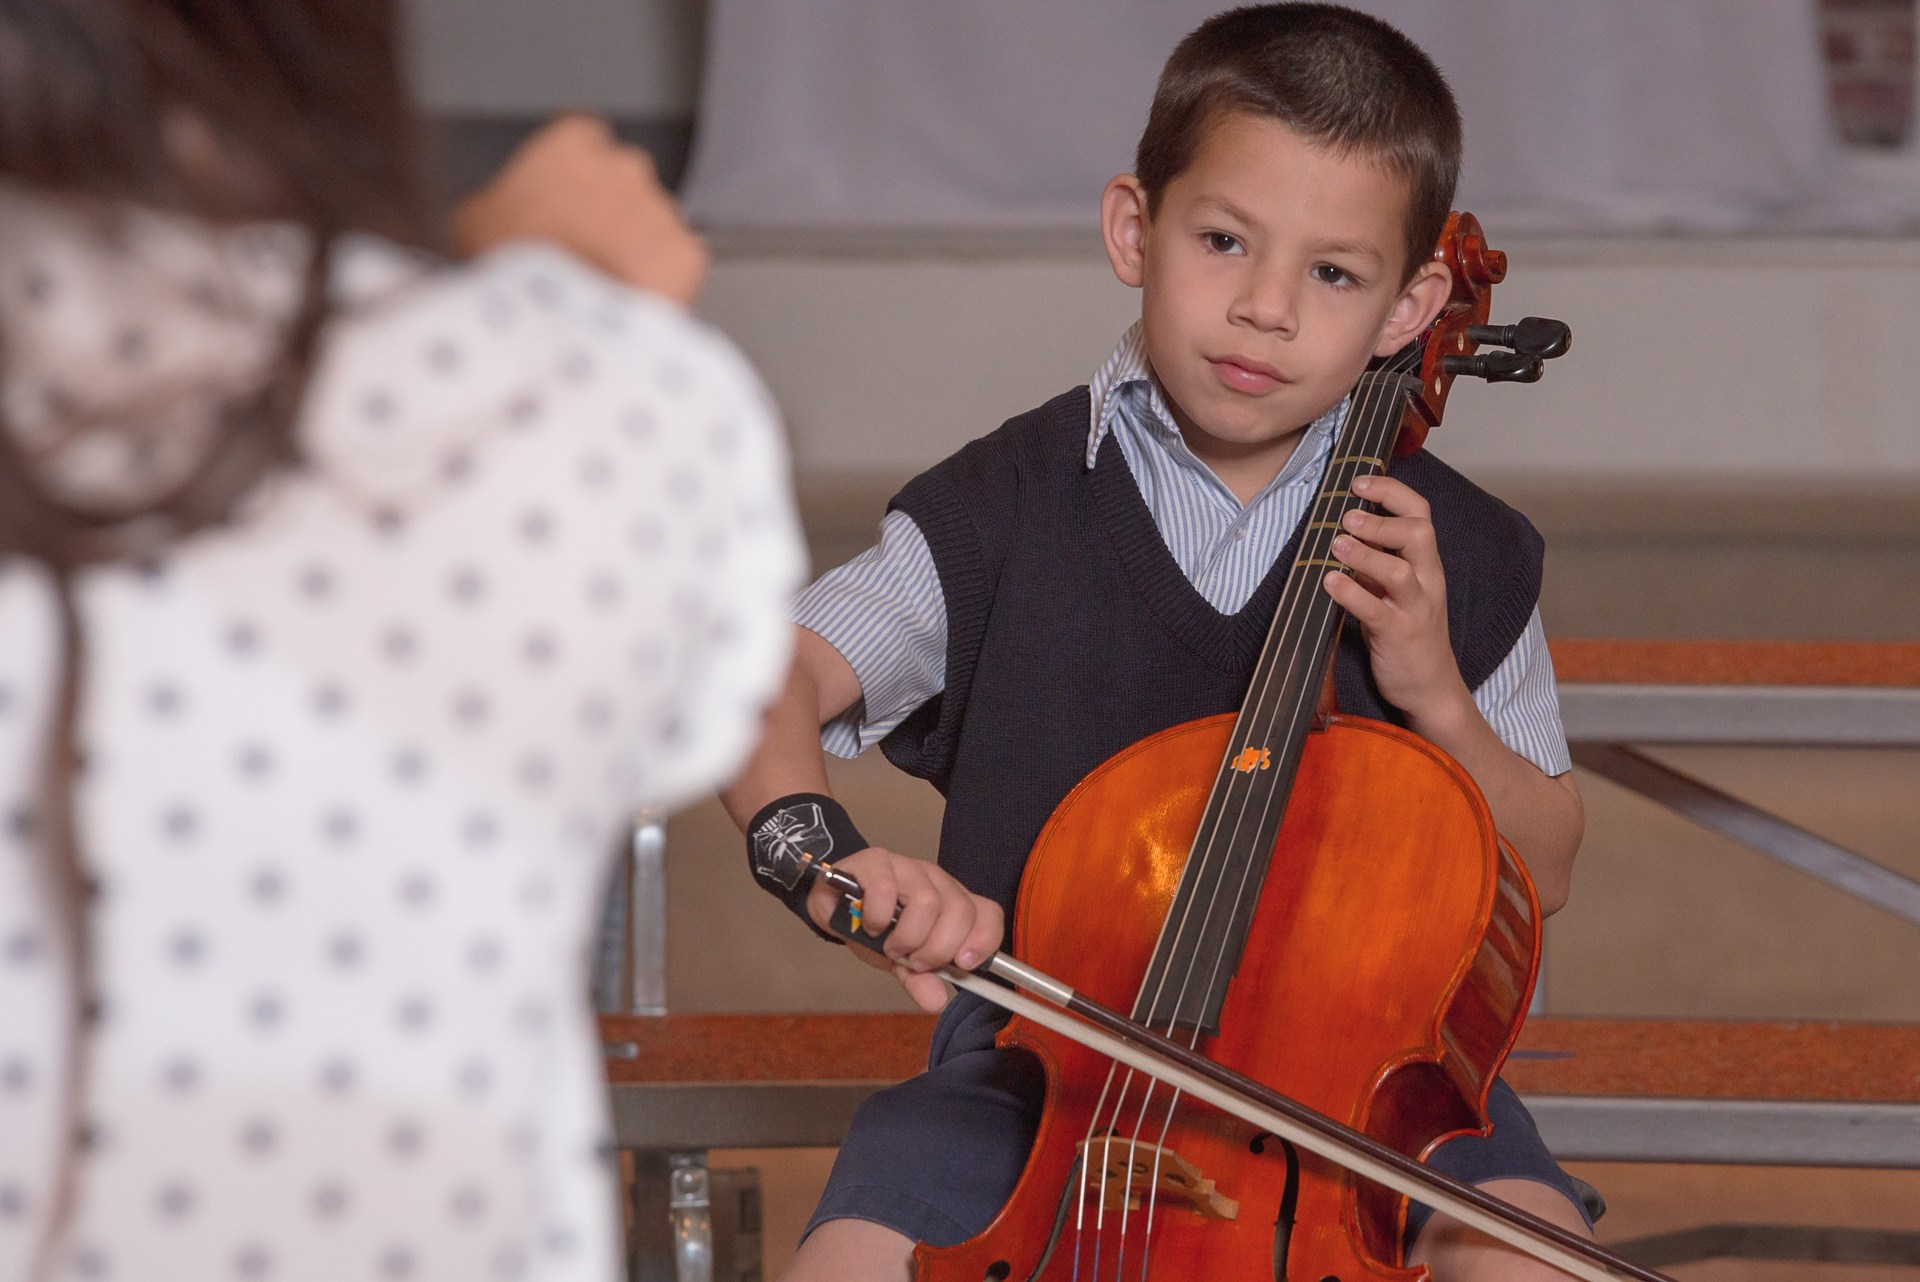 Student on cello